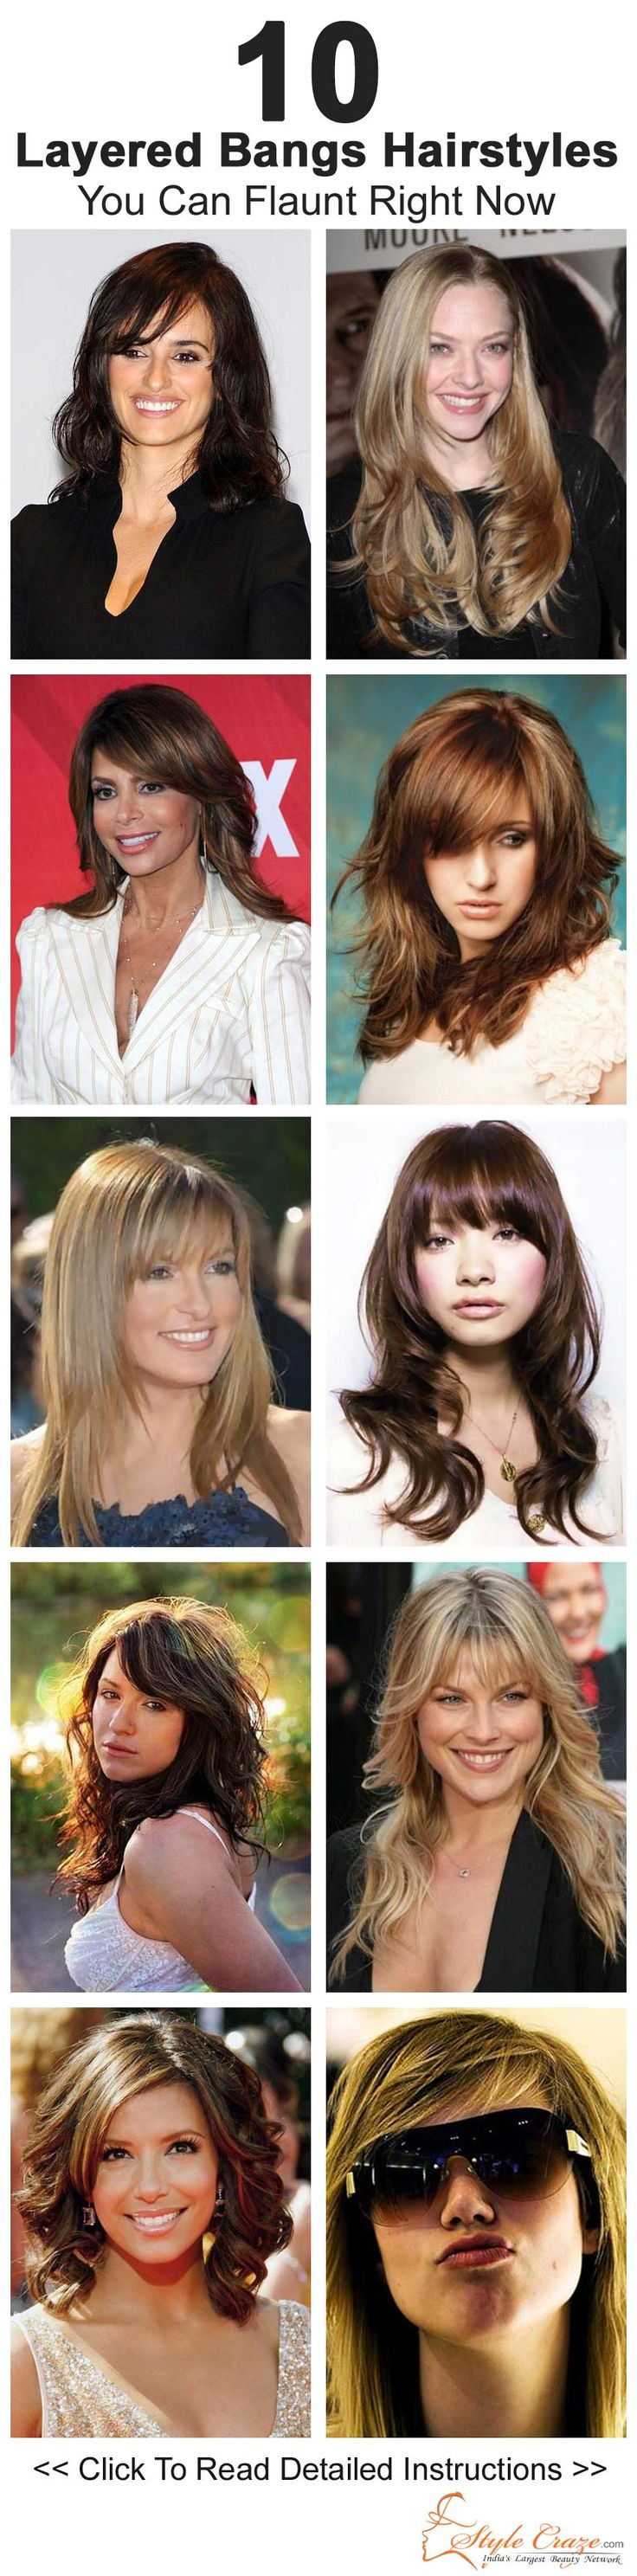 10 Layered Bangs Hairstyles You Can Flaunt When You Want ...regardless of what everybody else is doing!! :0}